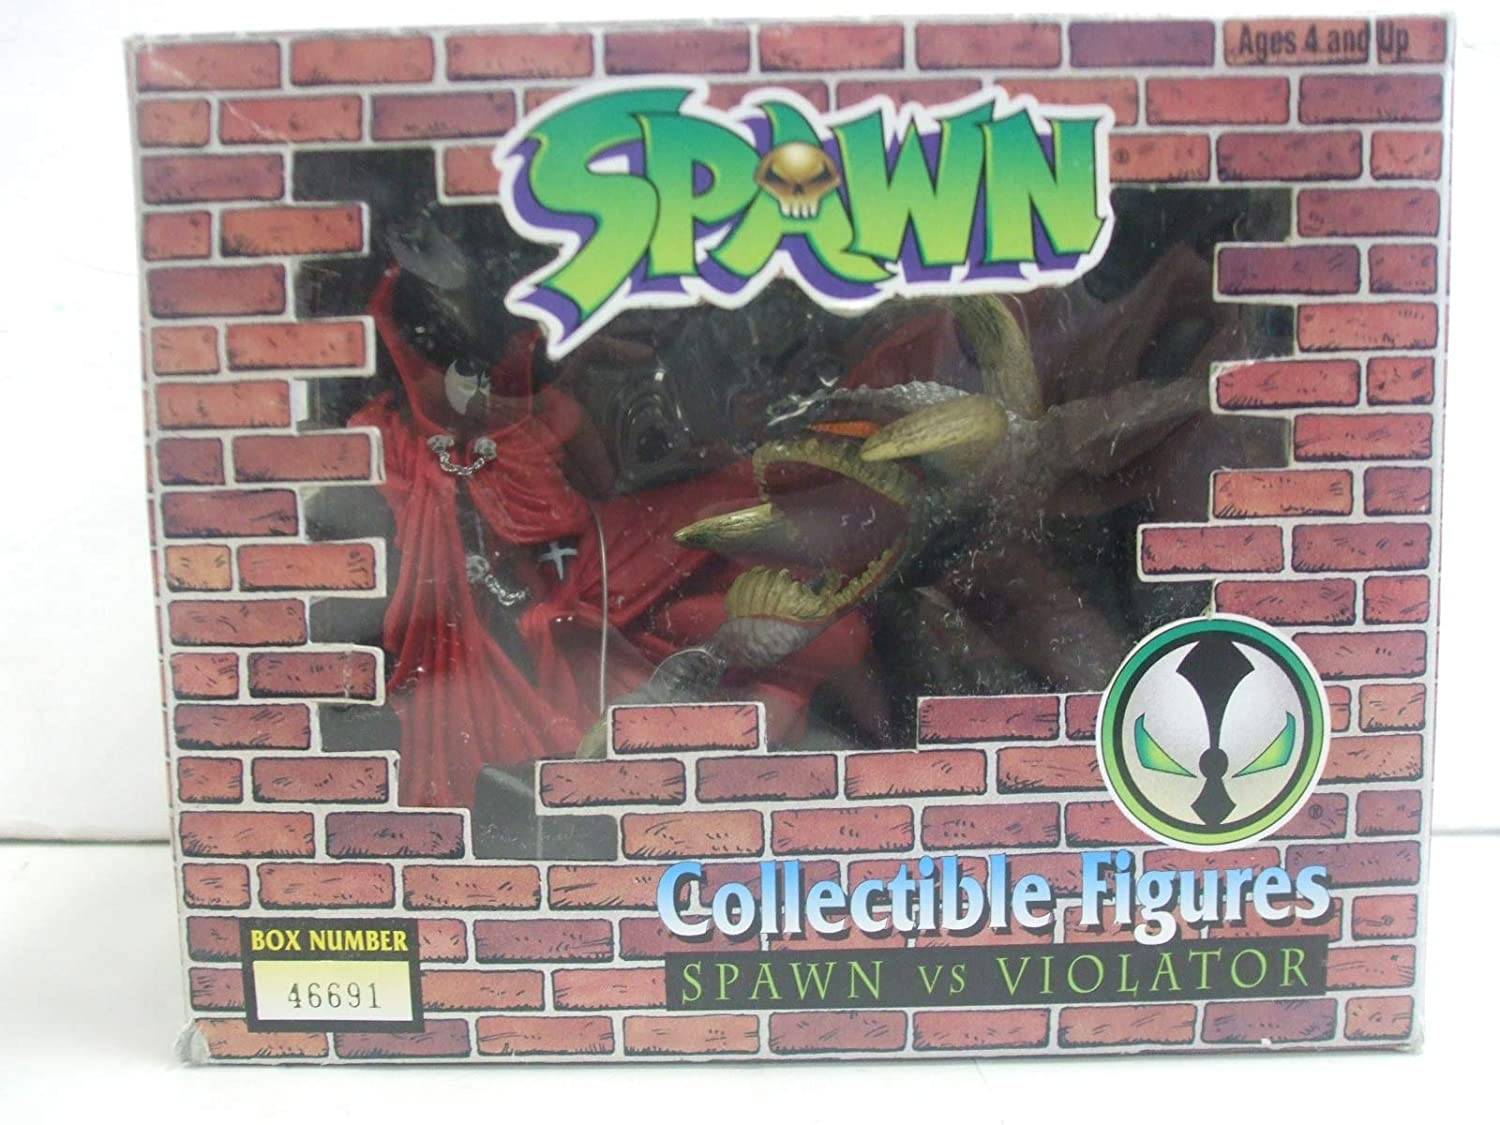 Spawn Vs Violator Todd Toys Collectible Figures Special Limited Run Spawn /& Violator Numbered Box Set